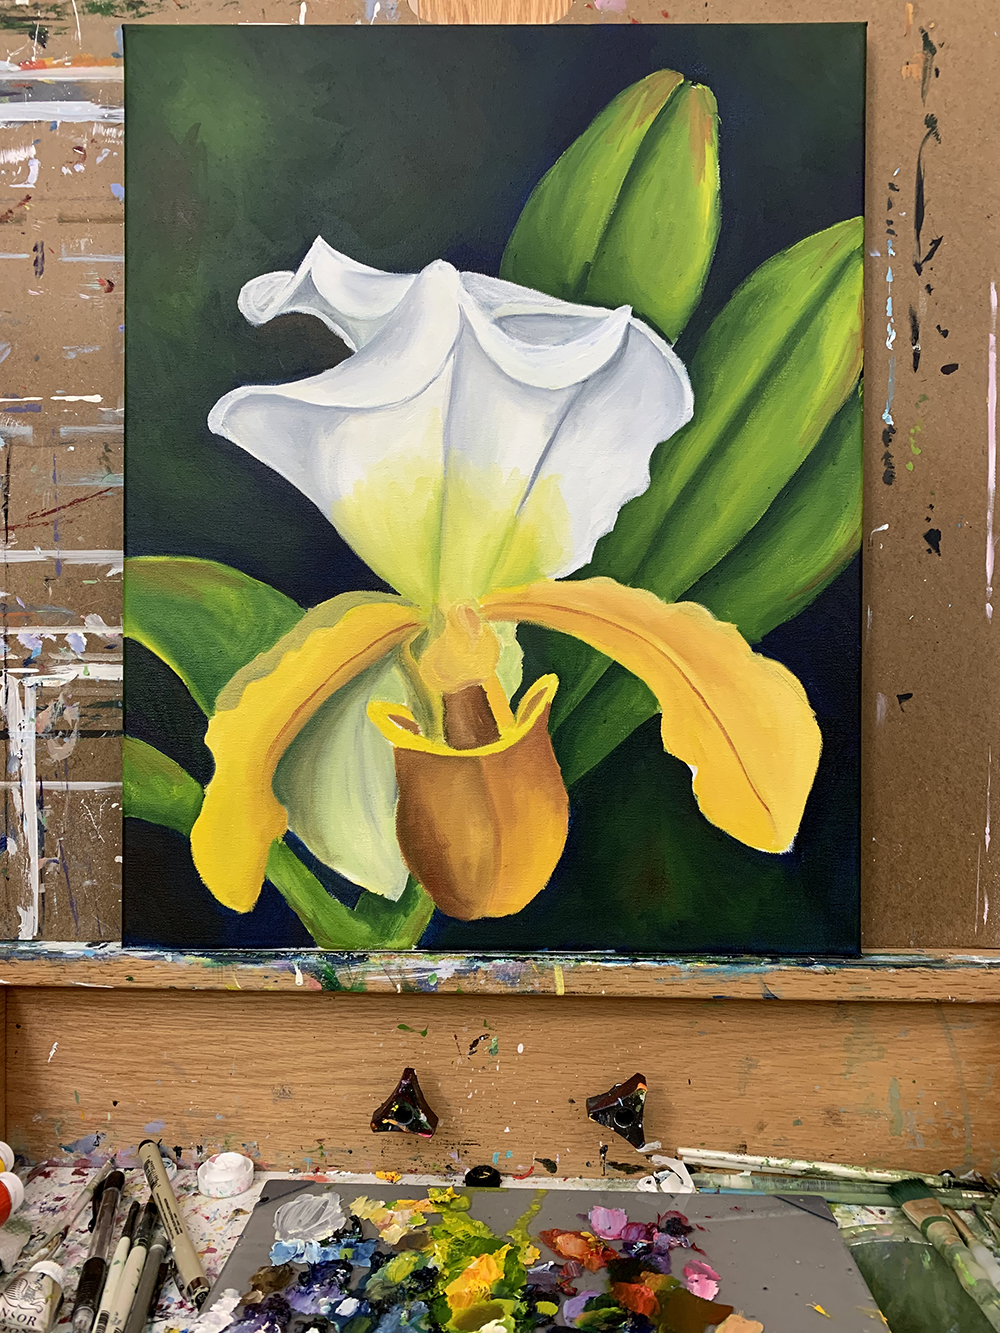 Lady Slipper Orchid- almost finished!